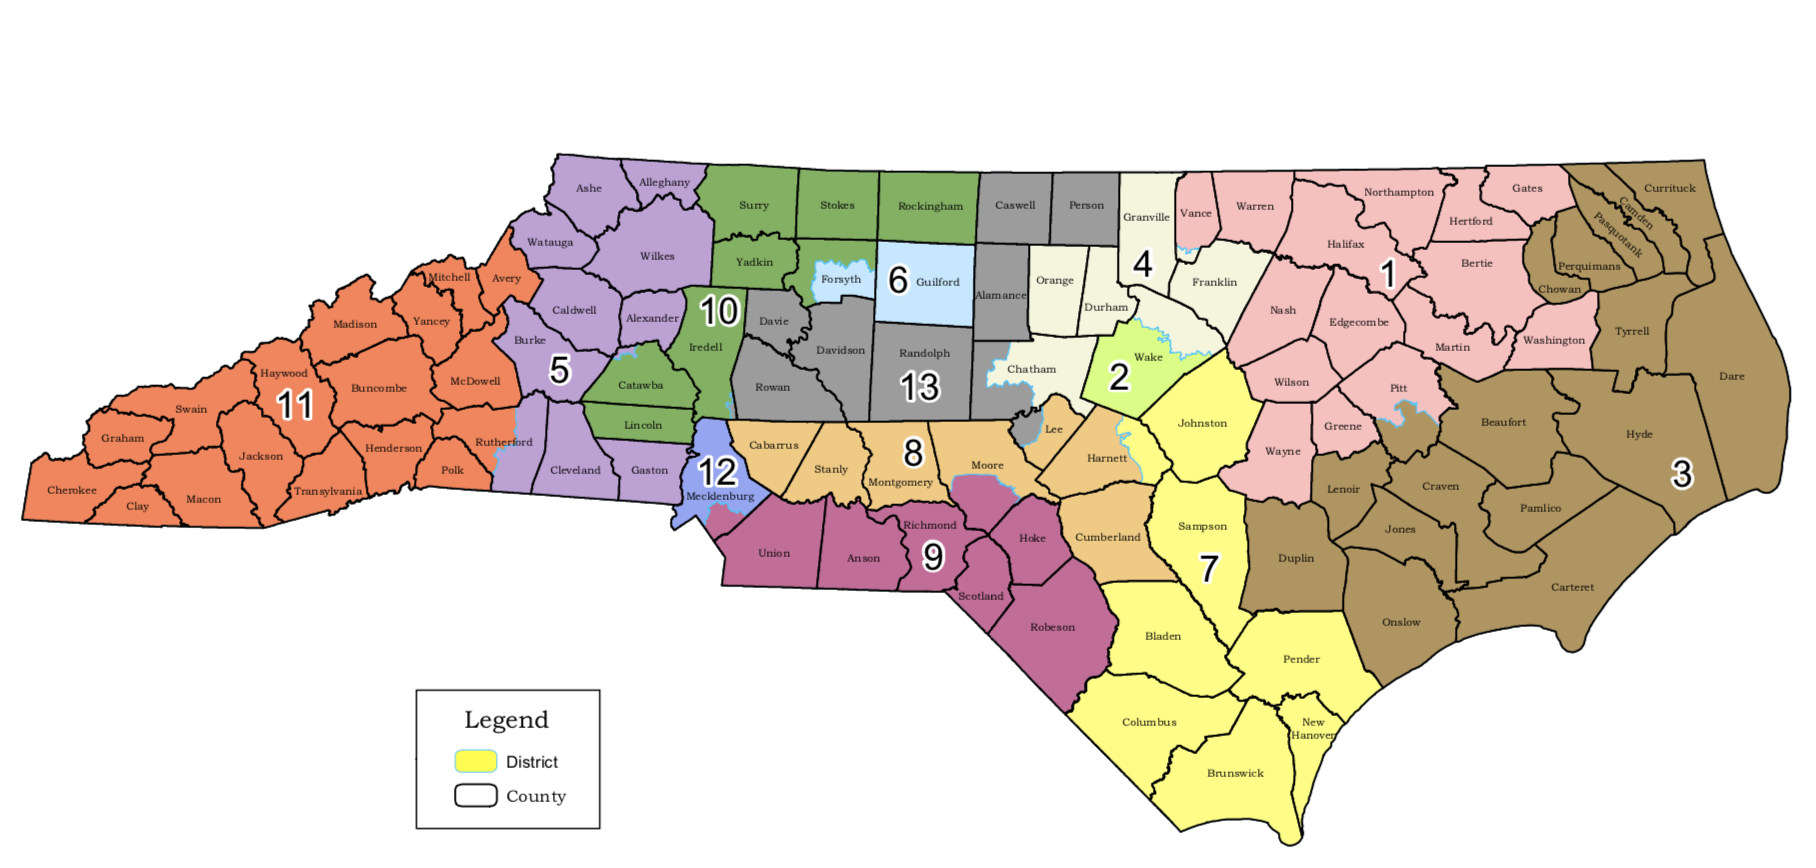 North Carolina legislature enacts new congressional map